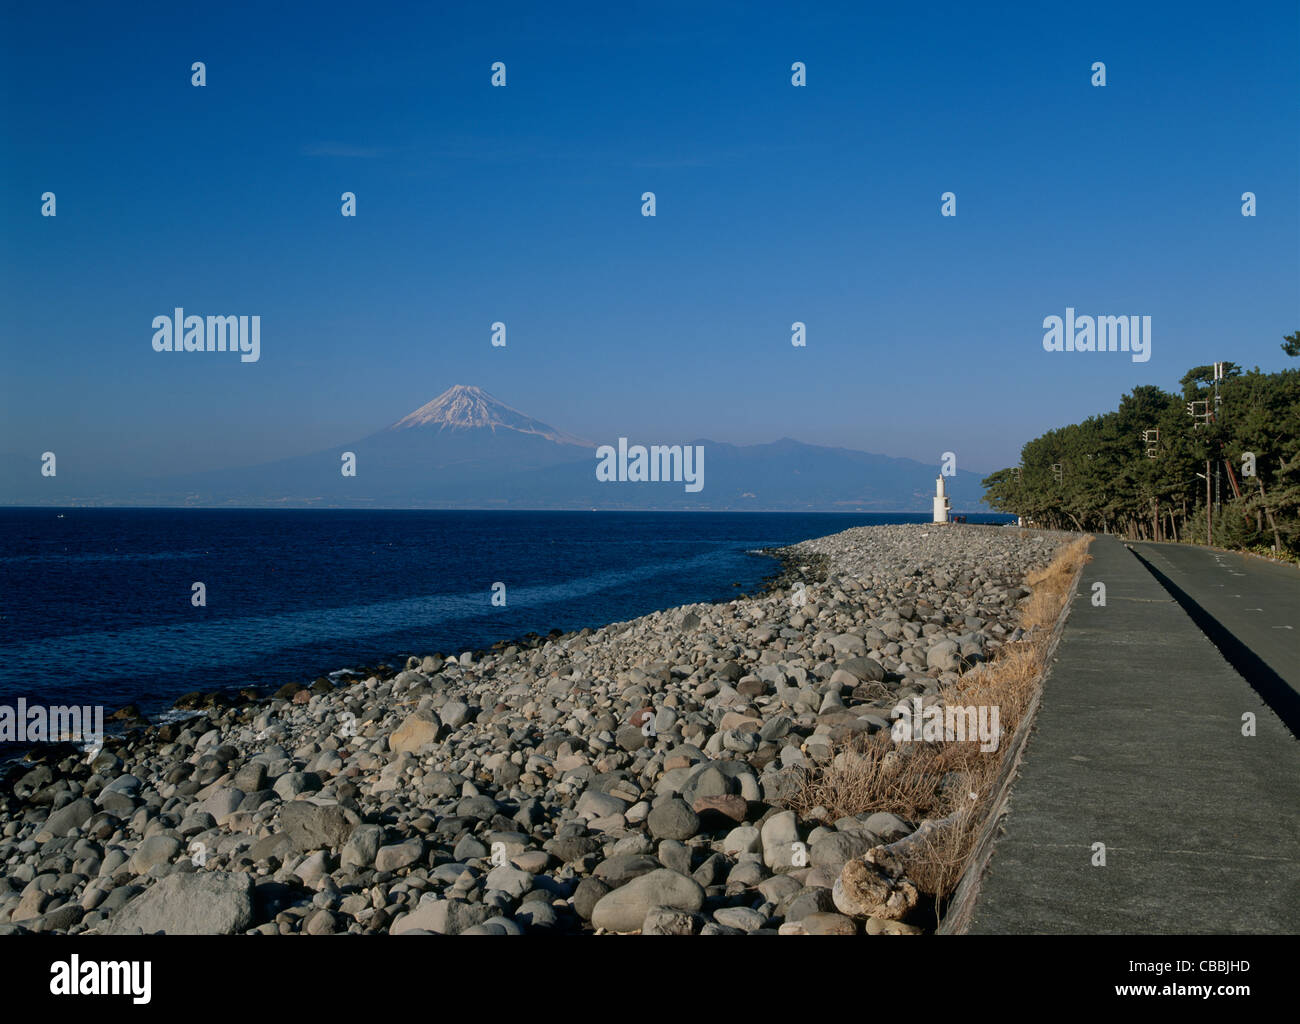 Cape Mihama and Mount Fuji, Numazu, Shizuoka, Japan - Stock Image